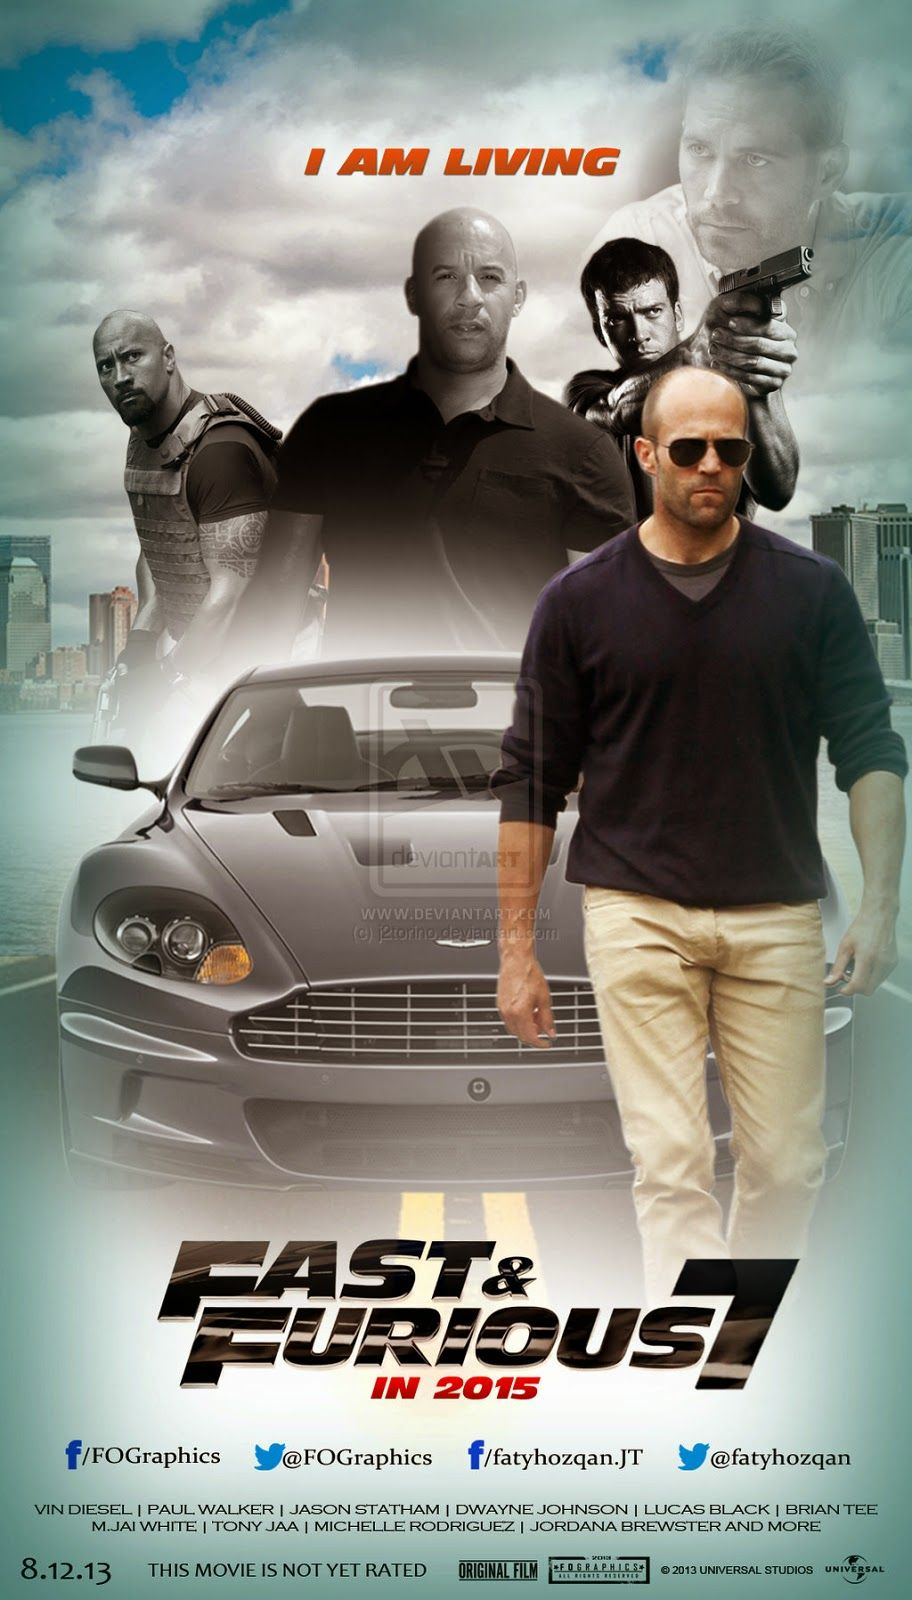 Fast and furious 7 full movie watch online free english